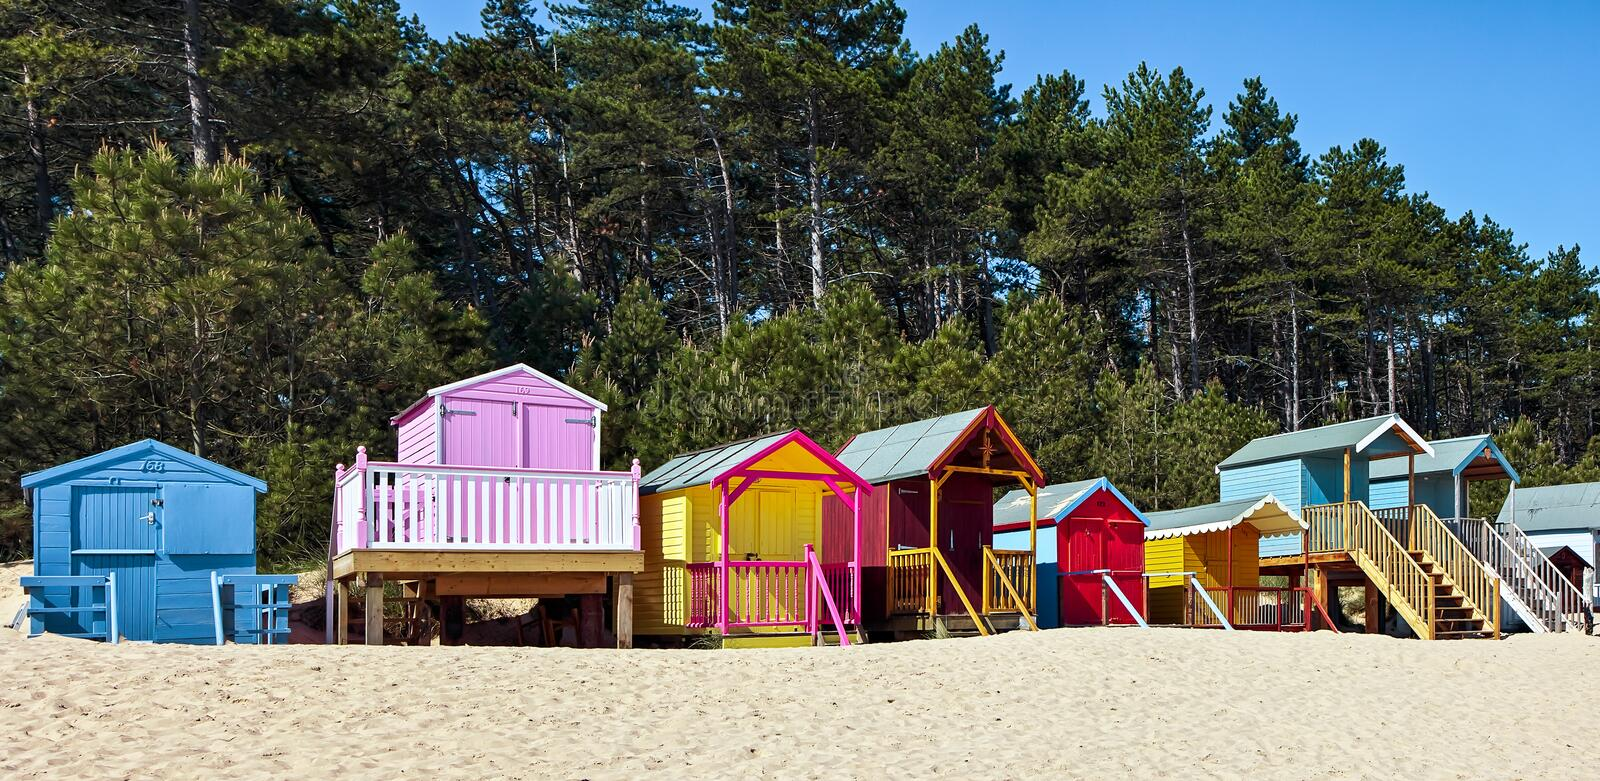 WELLS NEXT THE SEA, NORFOLK/UK - JUNE 3 : Some brightly coloured royalty free stock photography